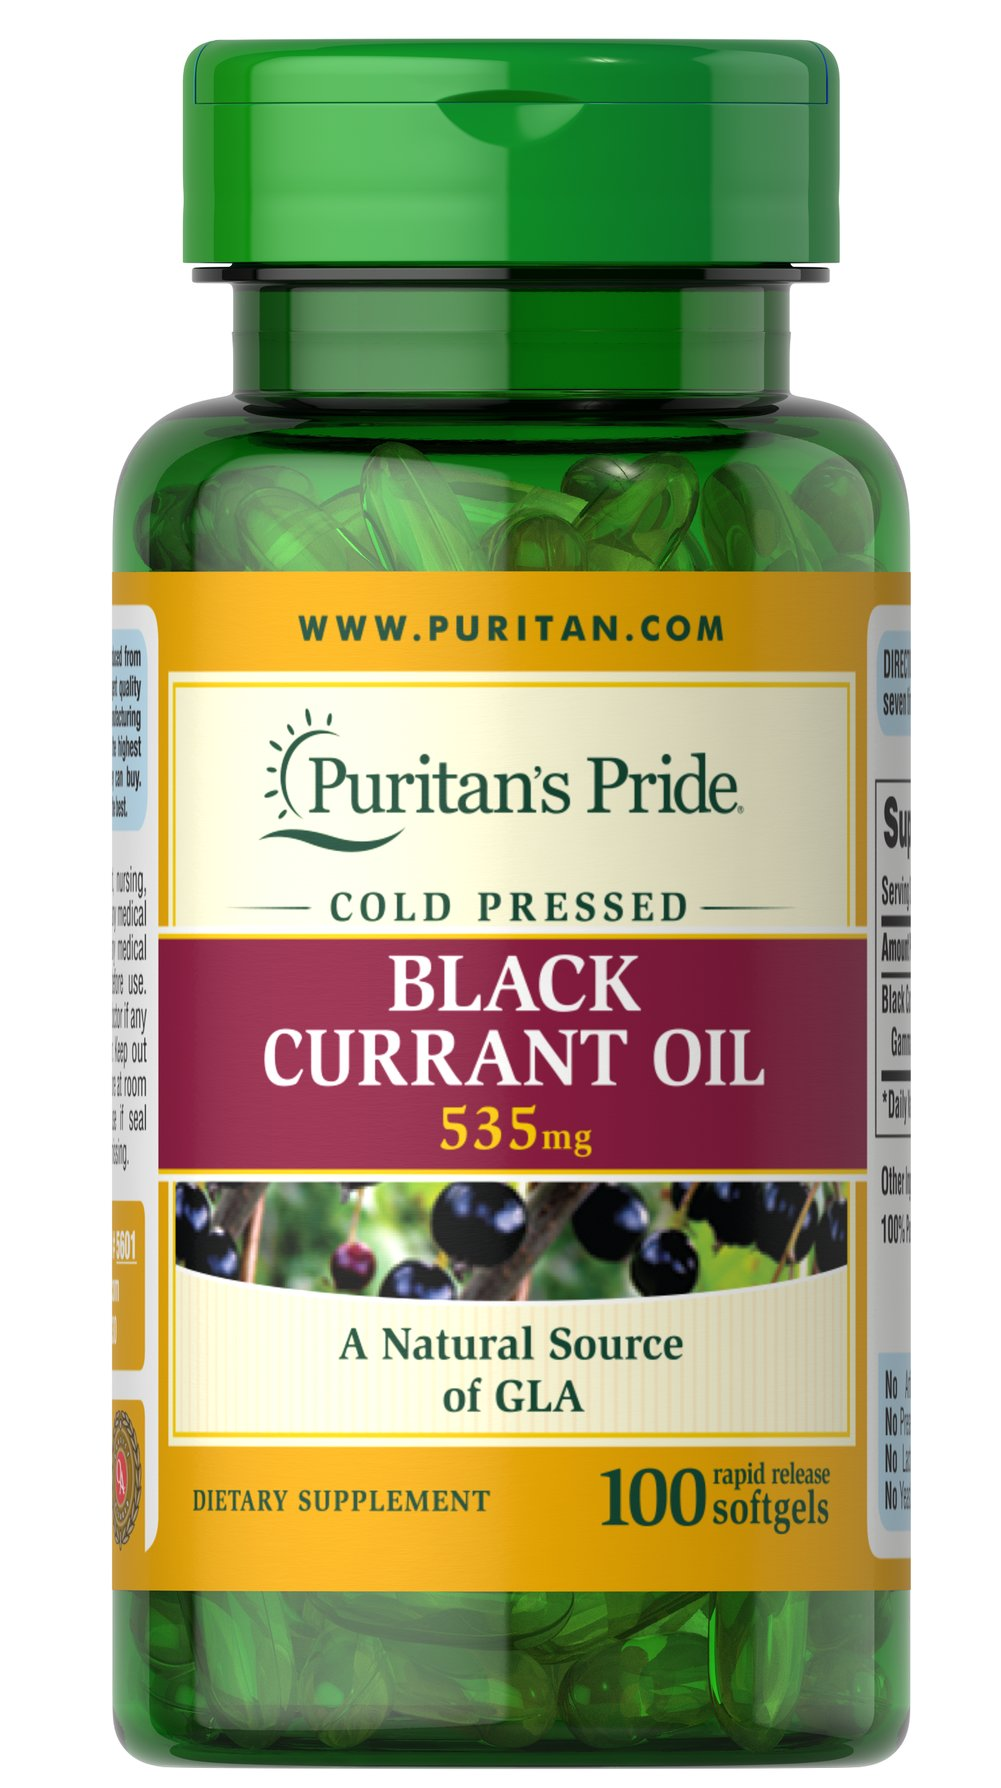 Black Currant Oil 535 mg <p>Black Currant Oil—which comes from the small black berries of the Black Currant shrub—is a natural source of GLA, which has been shown to help promote feminine wellness and provide nutritional support for woman experiencing PMS.** Each softgel contains 535 mg of Black Currant Oil and provides 80 mg of GLA.</p> 100 Softgels 535 mg $18.99